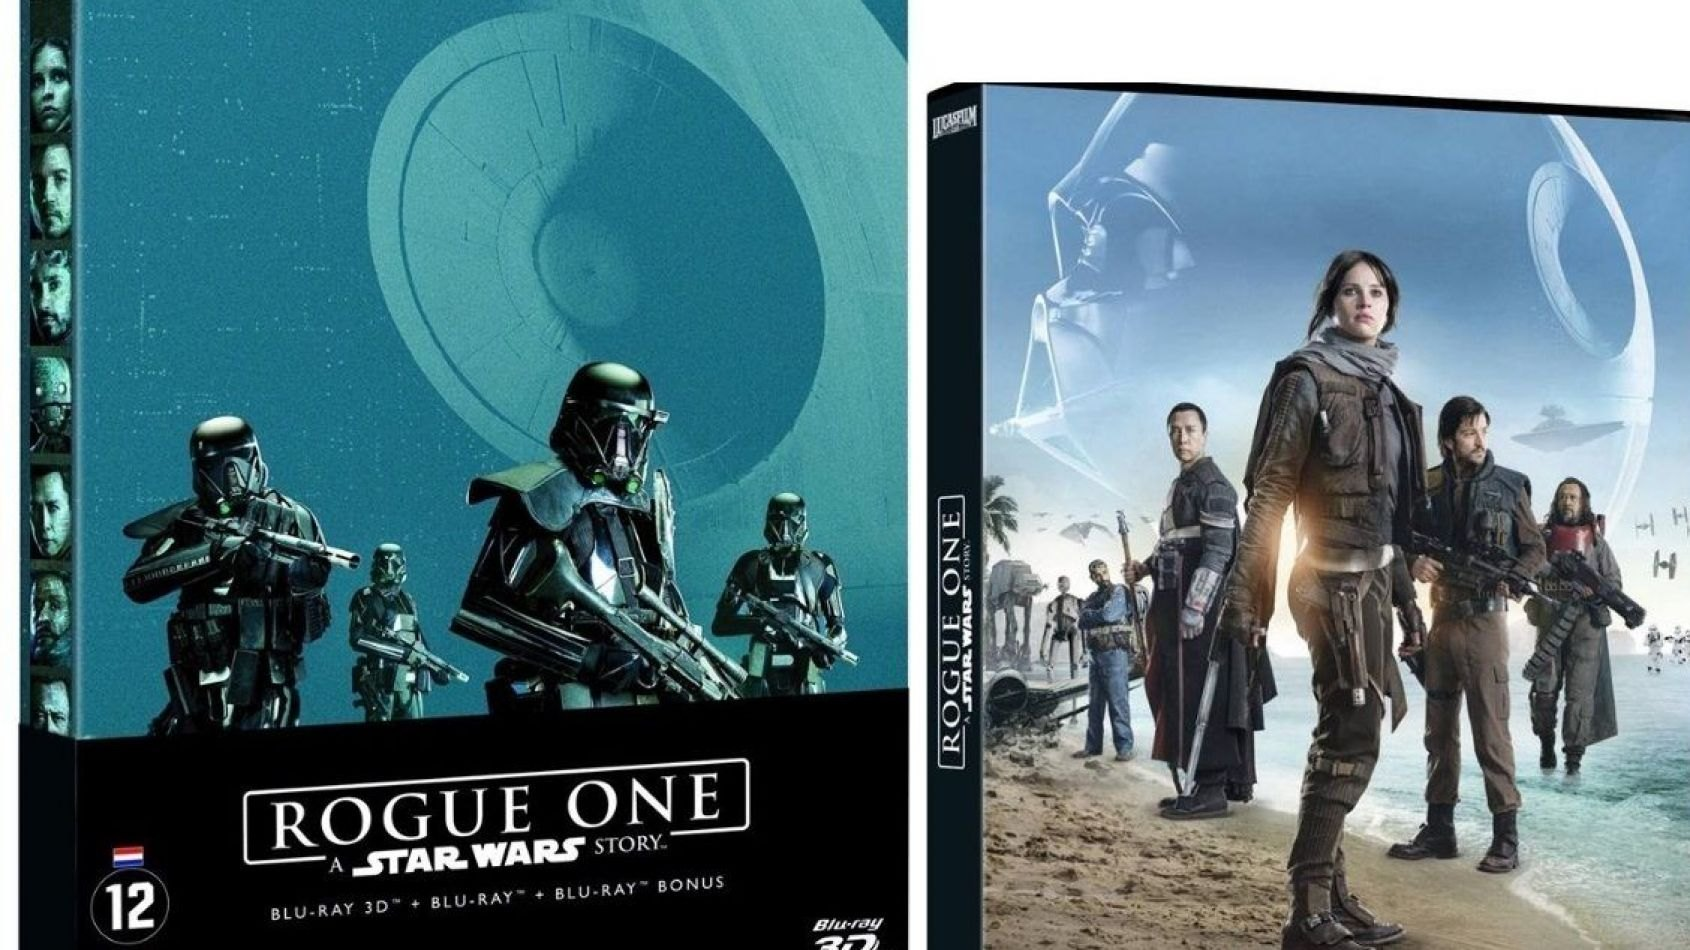 Les Dates et les Bonus des Blu-Ray et DVD de Rogue One en France !